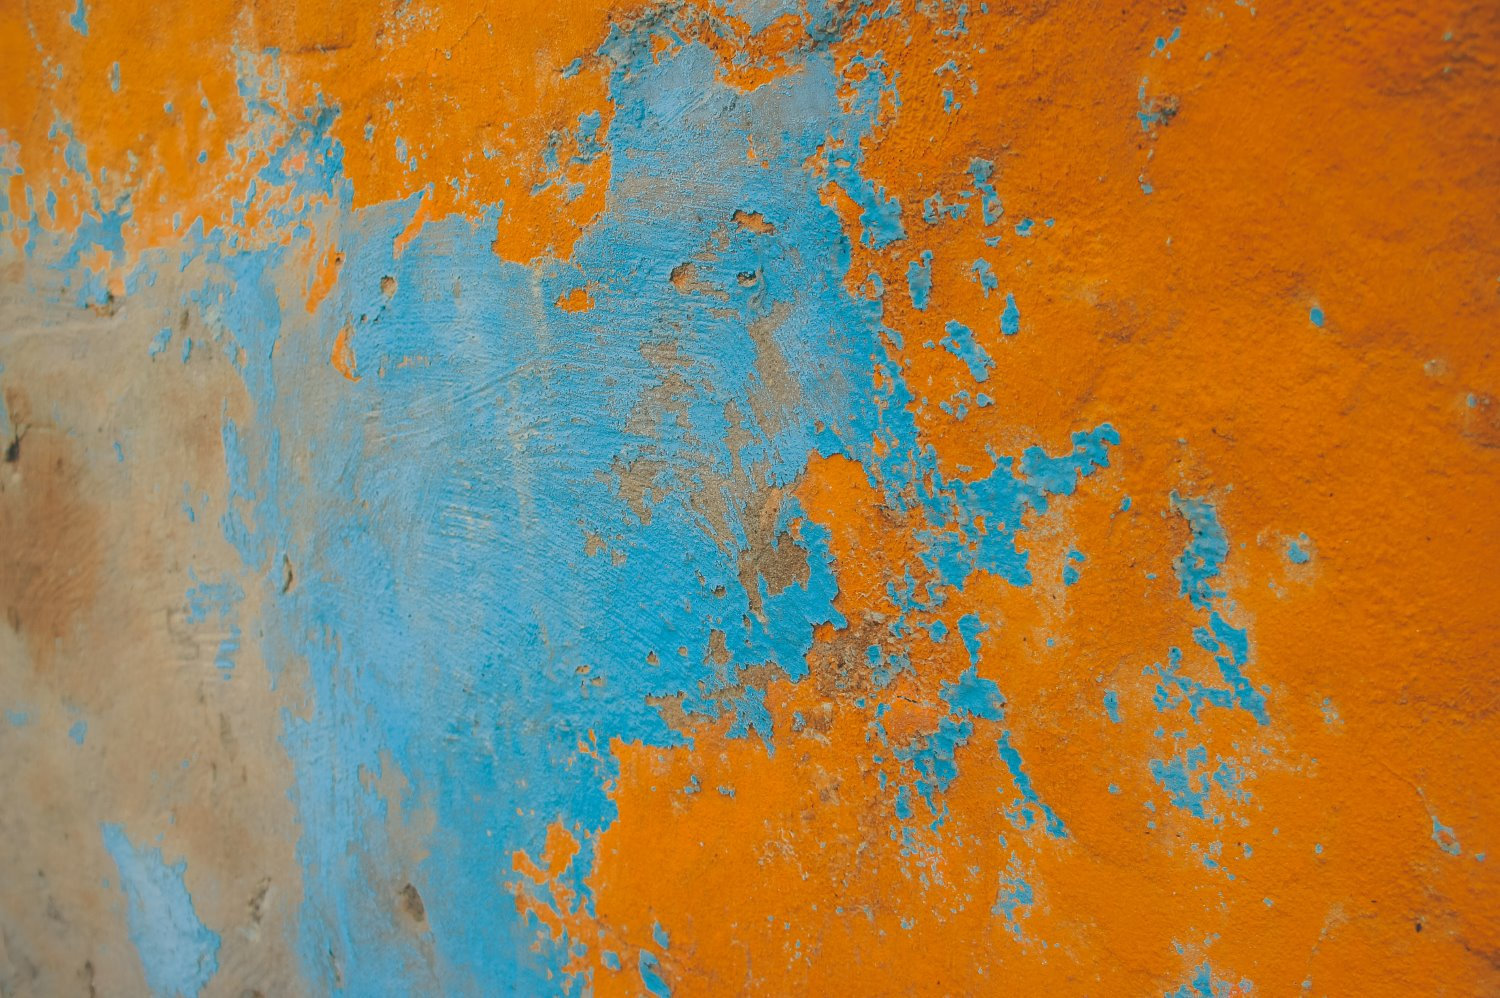 complementary color example